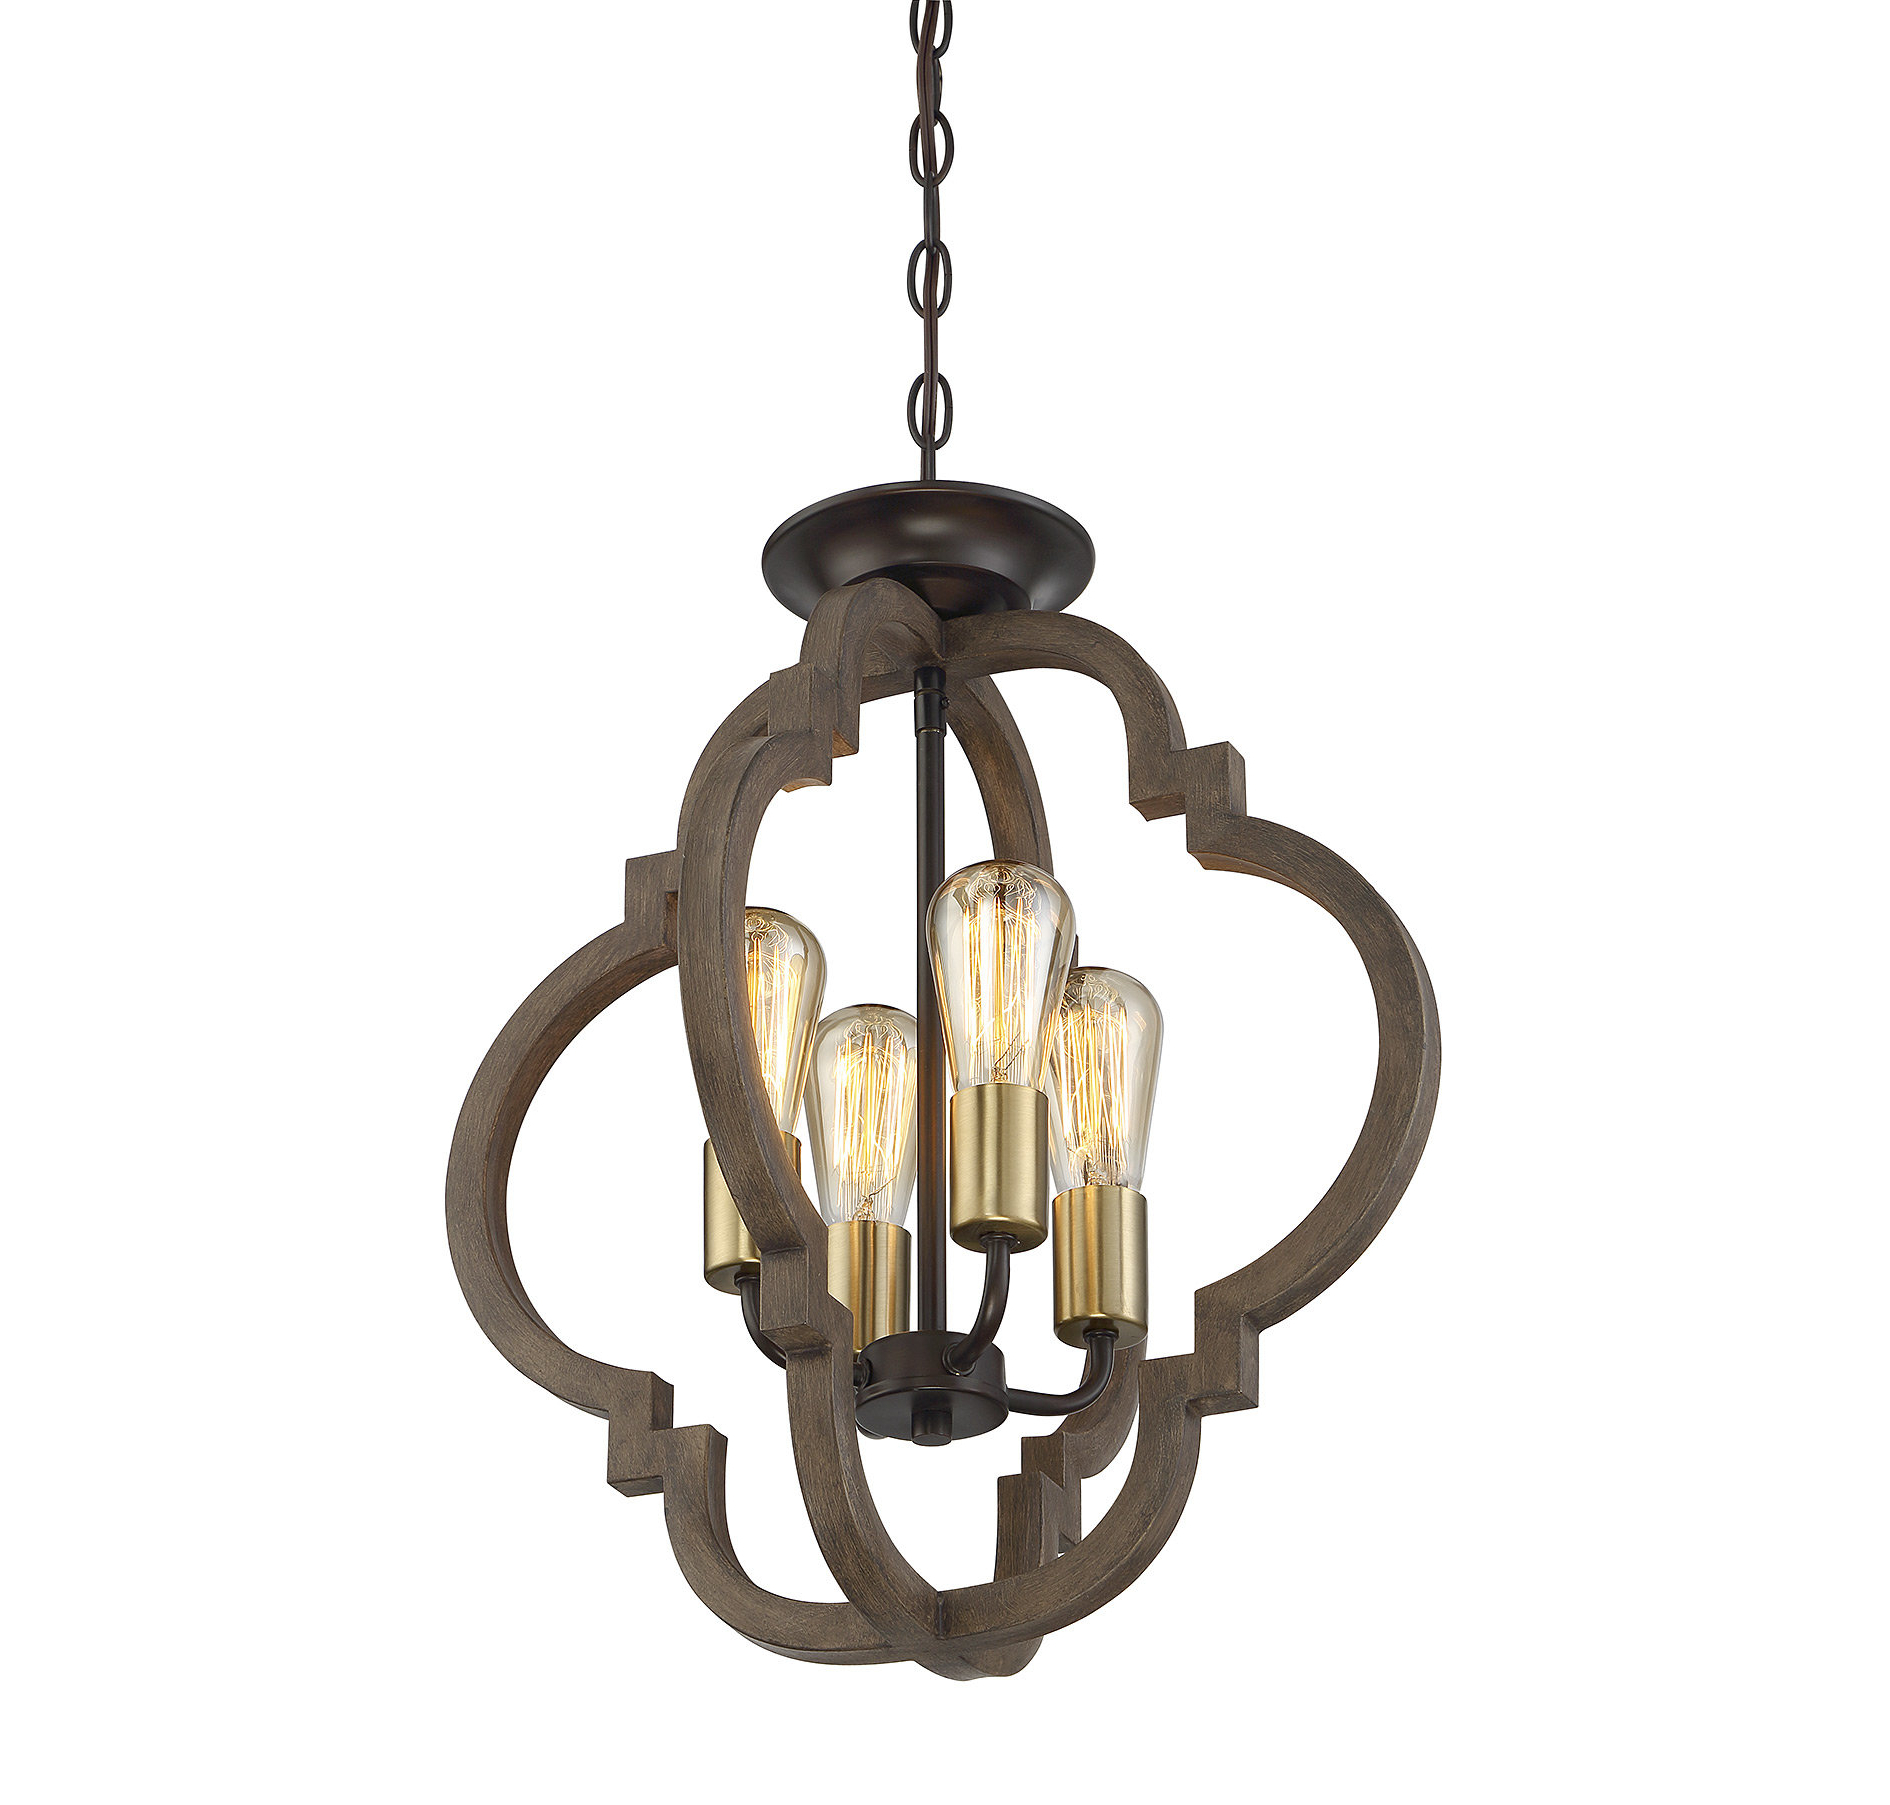 [%Wayfair: Semi Annual Lighting Sale – Up To 70% Off Lighting Within Latest Joon 6 Light Globe Chandeliers|Joon 6 Light Globe Chandeliers In Latest Wayfair: Semi Annual Lighting Sale – Up To 70% Off Lighting|Most Up To Date Joon 6 Light Globe Chandeliers Inside Wayfair: Semi Annual Lighting Sale – Up To 70% Off Lighting|Popular Wayfair: Semi Annual Lighting Sale – Up To 70% Off Lighting For Joon 6 Light Globe Chandeliers%] (View 1 of 20)